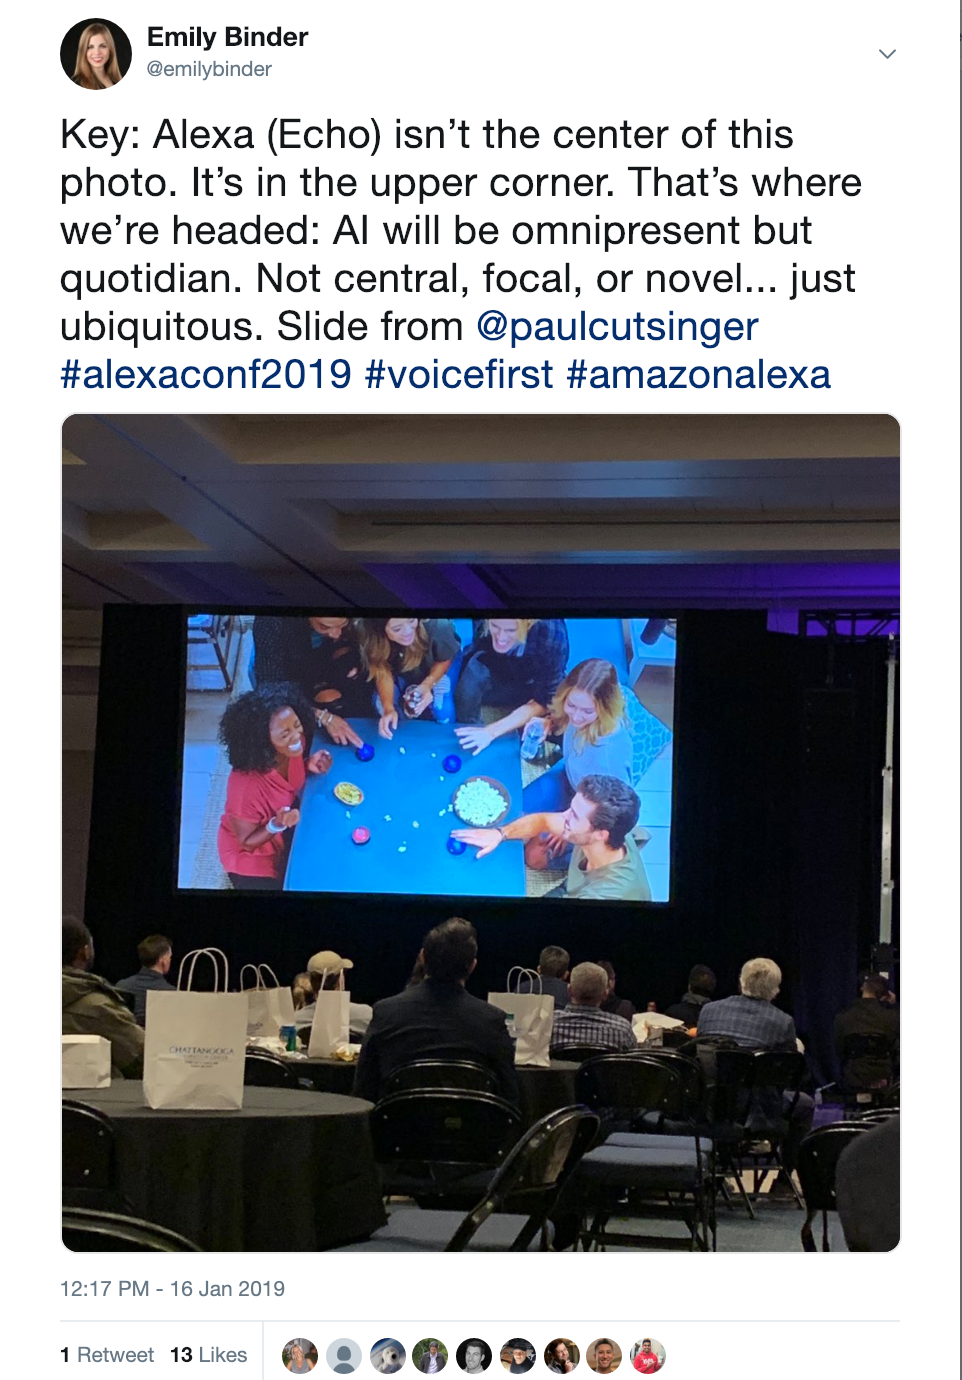 Notice that Alexa (Echo) isn't the center of this photo. It's in the upper corner. Peripheral. That's where we're headed: ubiquity of voice assistants. (My reflection on this slide from Paul Cutsinger of Amazon at The Alexa Conference 2019 - Chattanooga, TN).